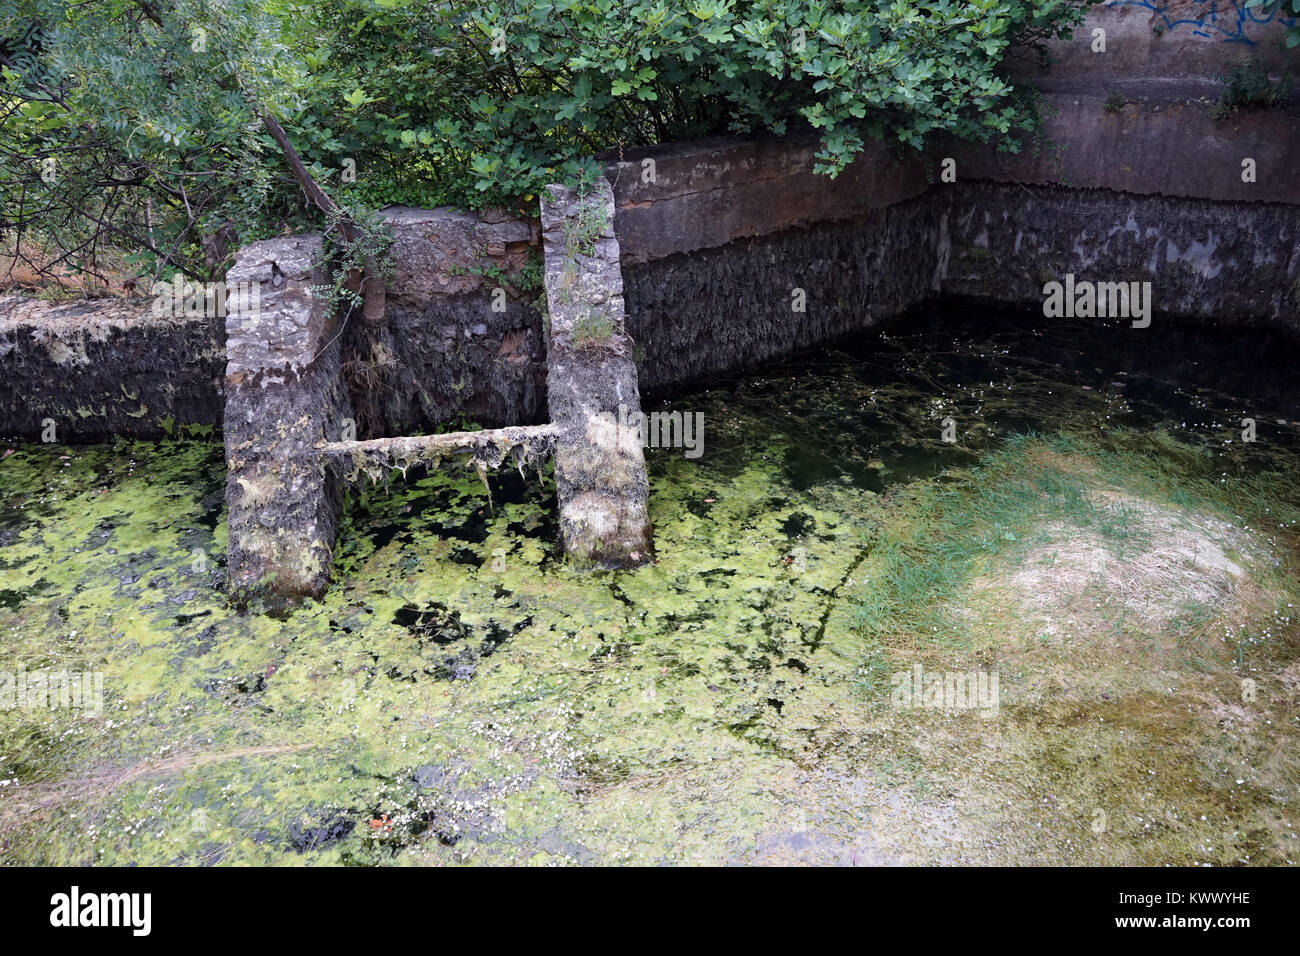 Dirt water in concrete pond - Stock Image